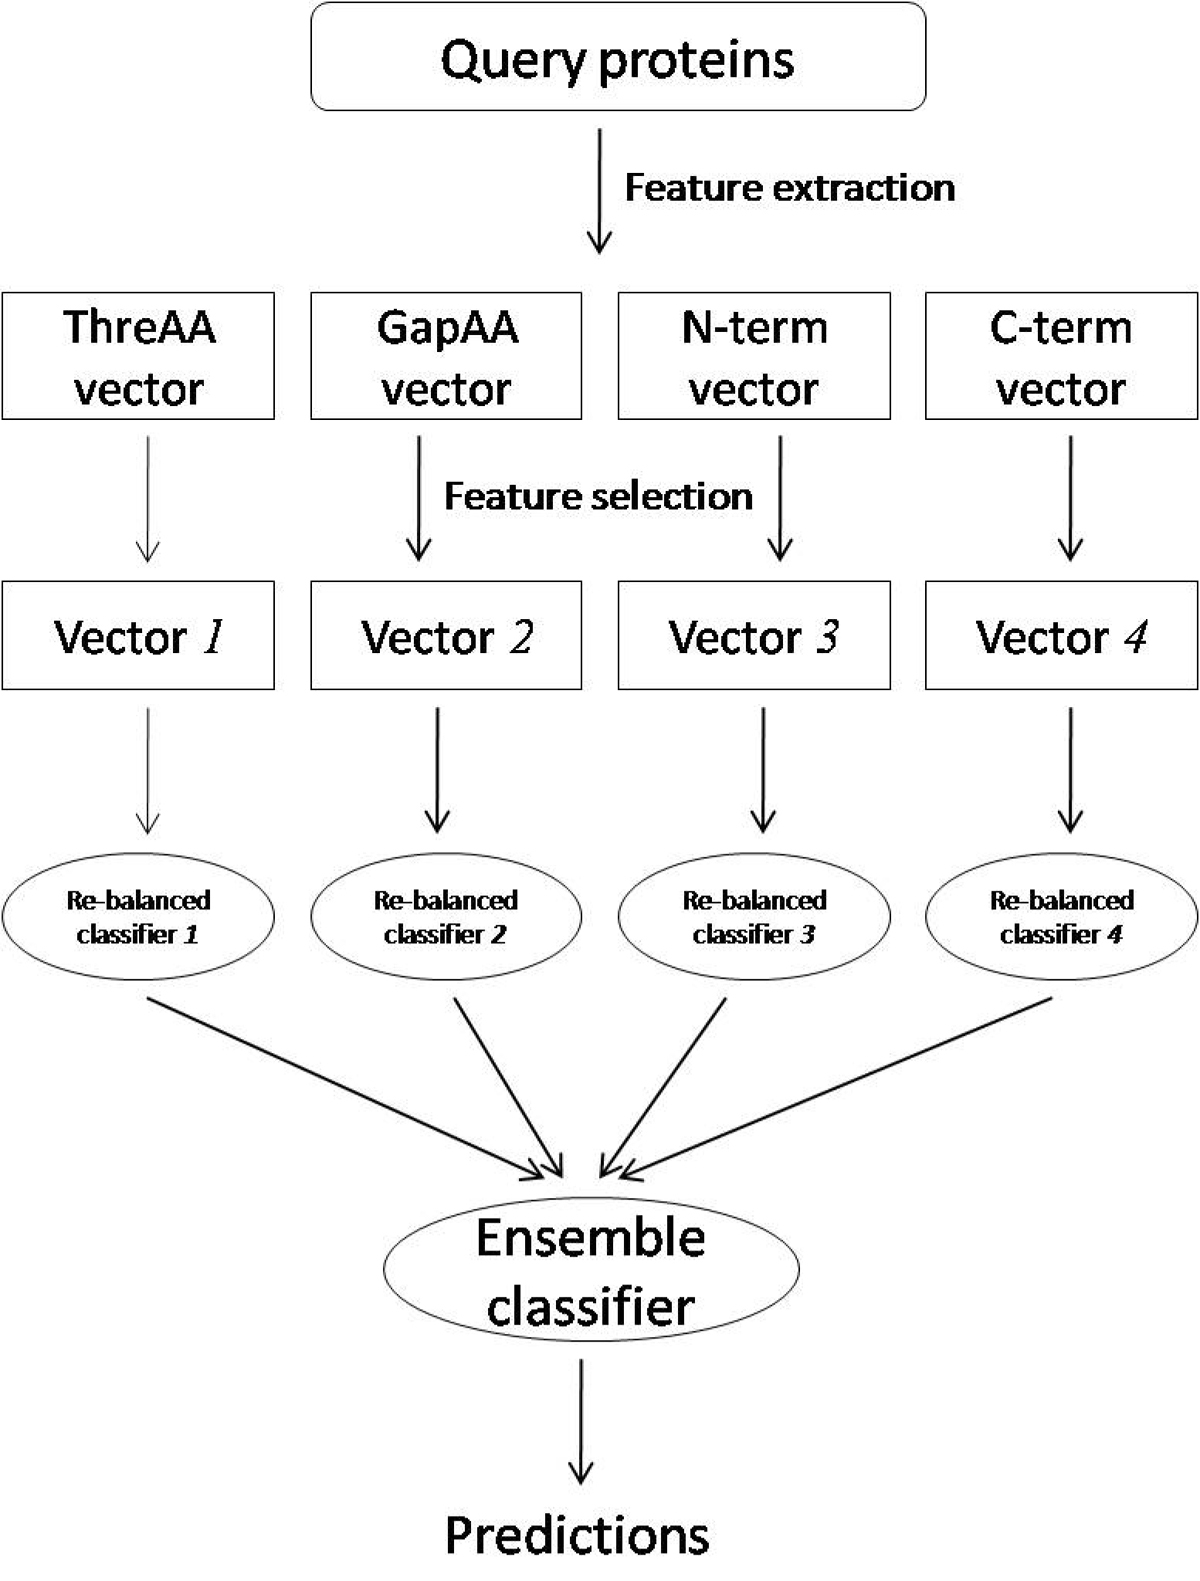 http://static-content.springer.com/image/art%3A10.1186%2F1752-0509-4-S2-S12/MediaObjects/12918_2010_Article_542_Fig5_HTML.jpg